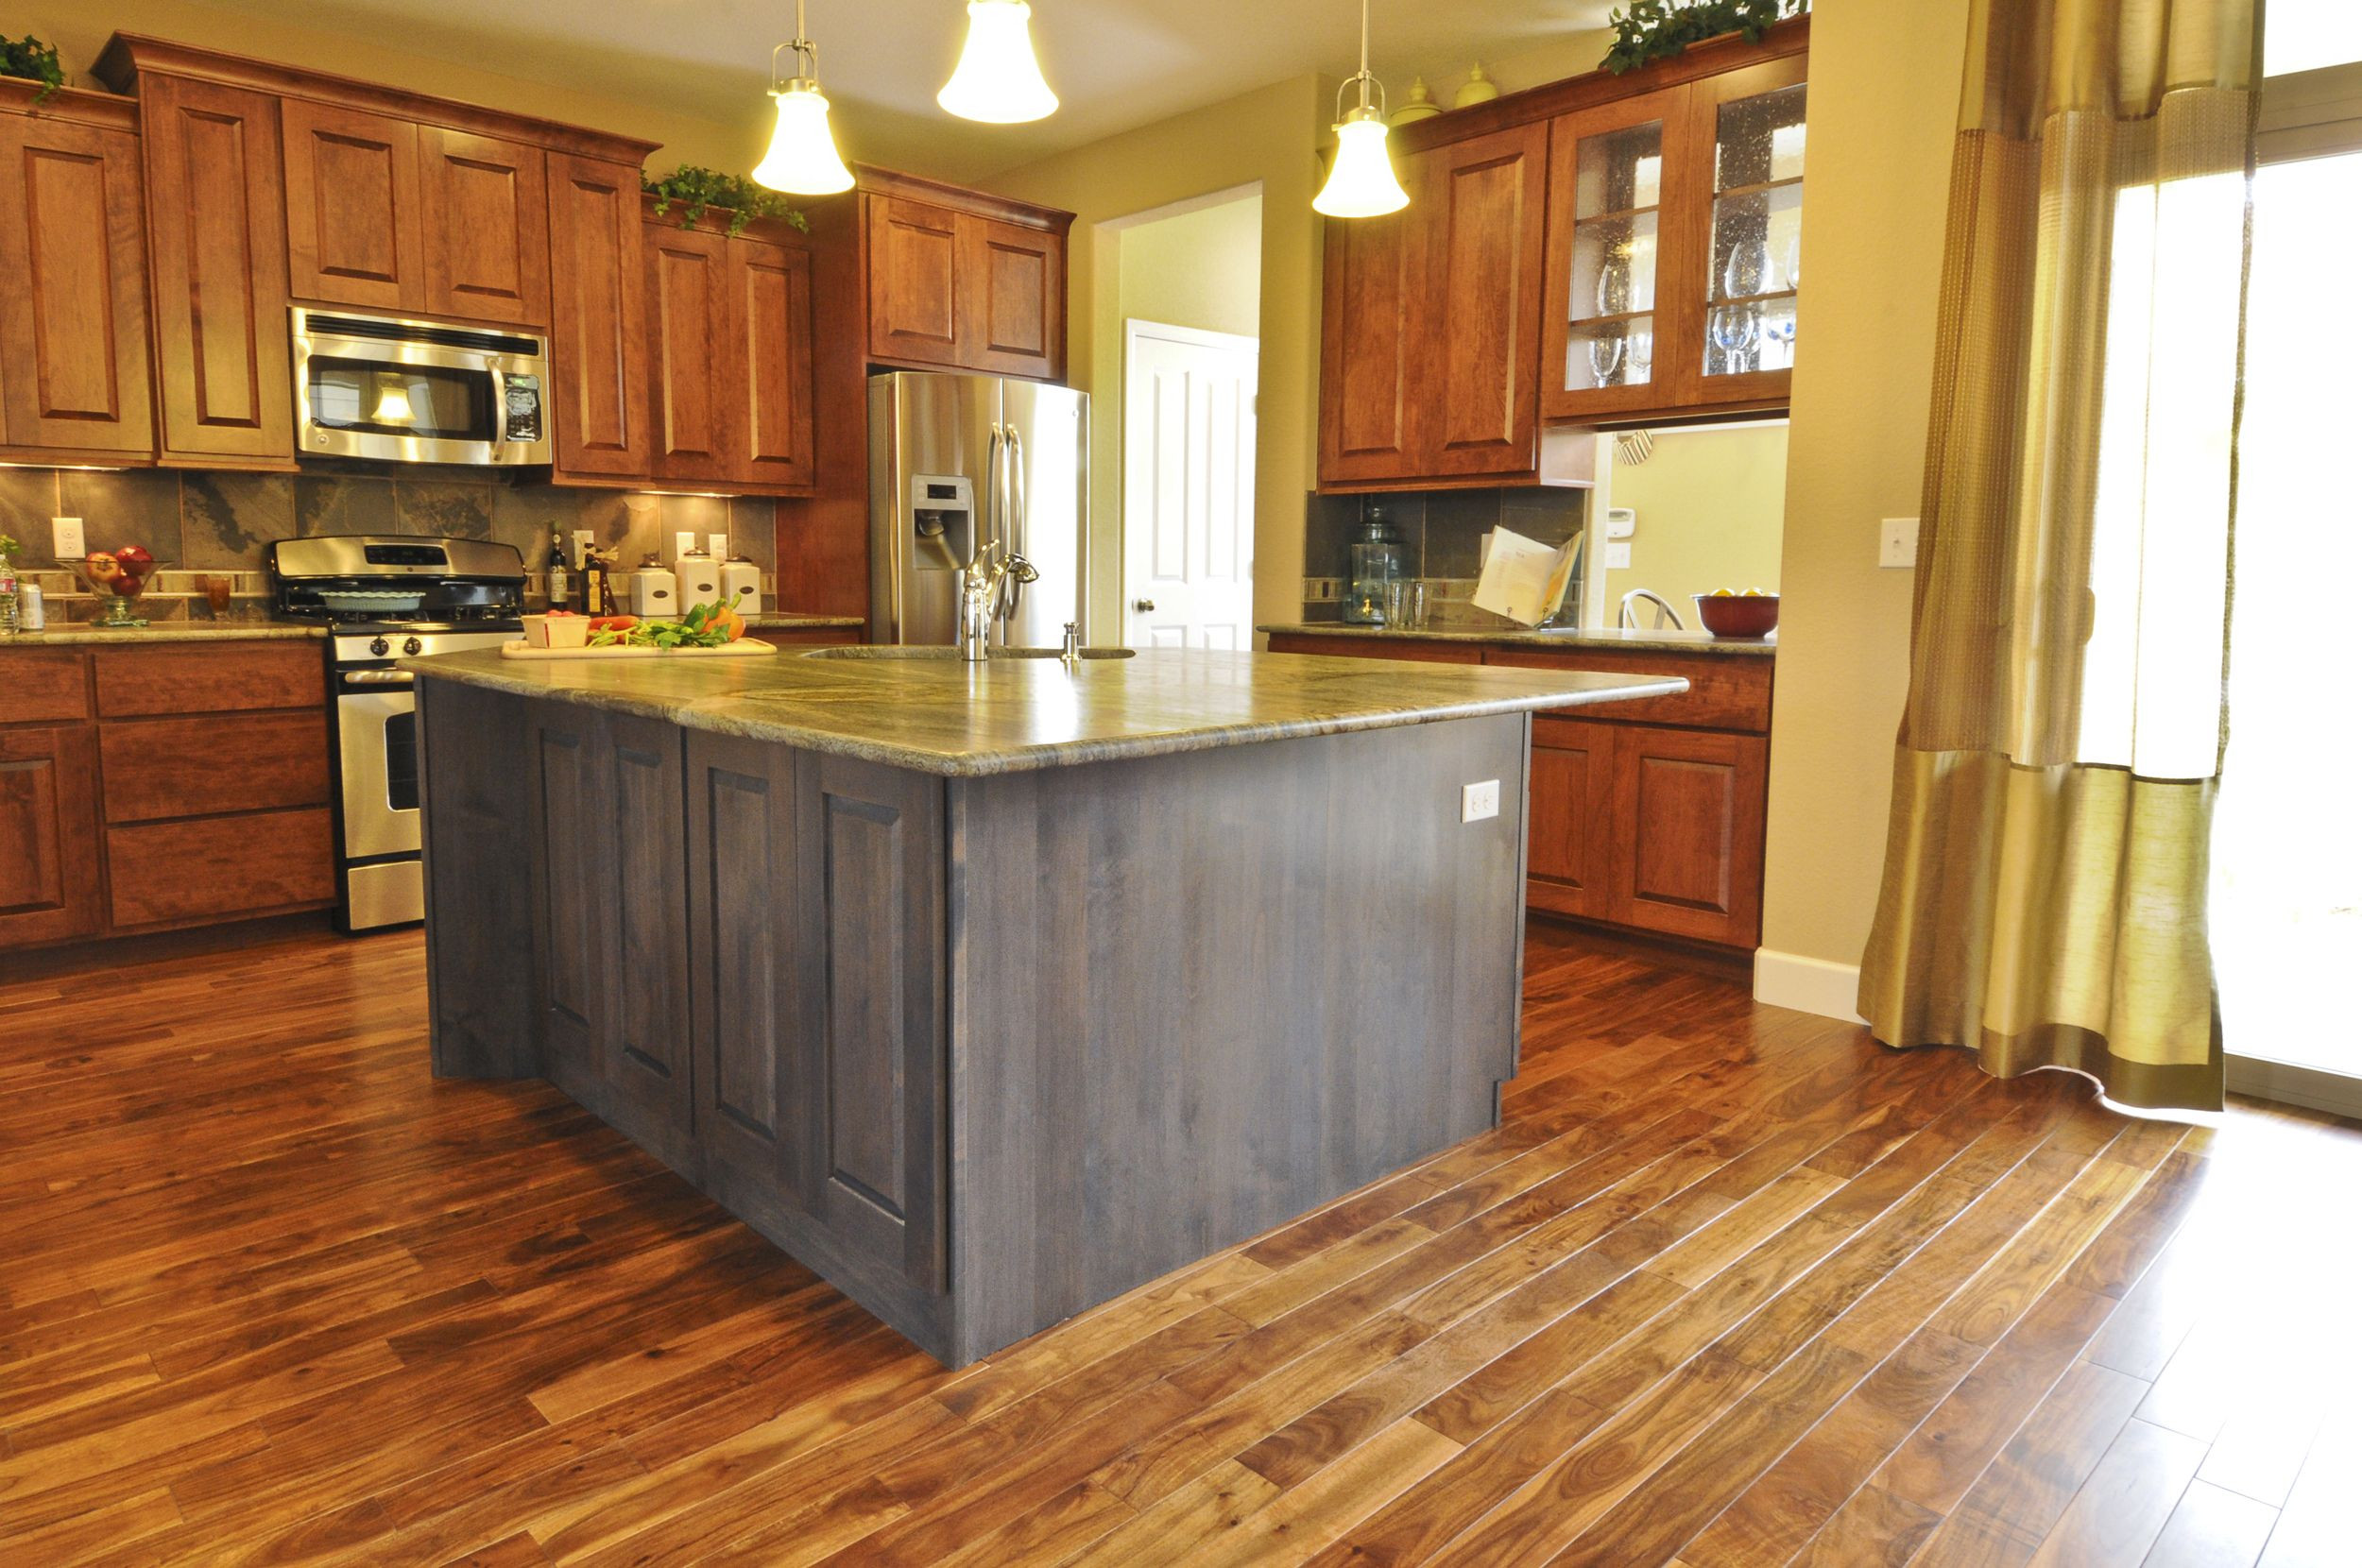 richmond hardwood flooring of hardwood floor refinishing richmond va kentwood acacia natural intended for hardwood floor refinishing richmond va kentwood acacia natural flooring ideas pinterest